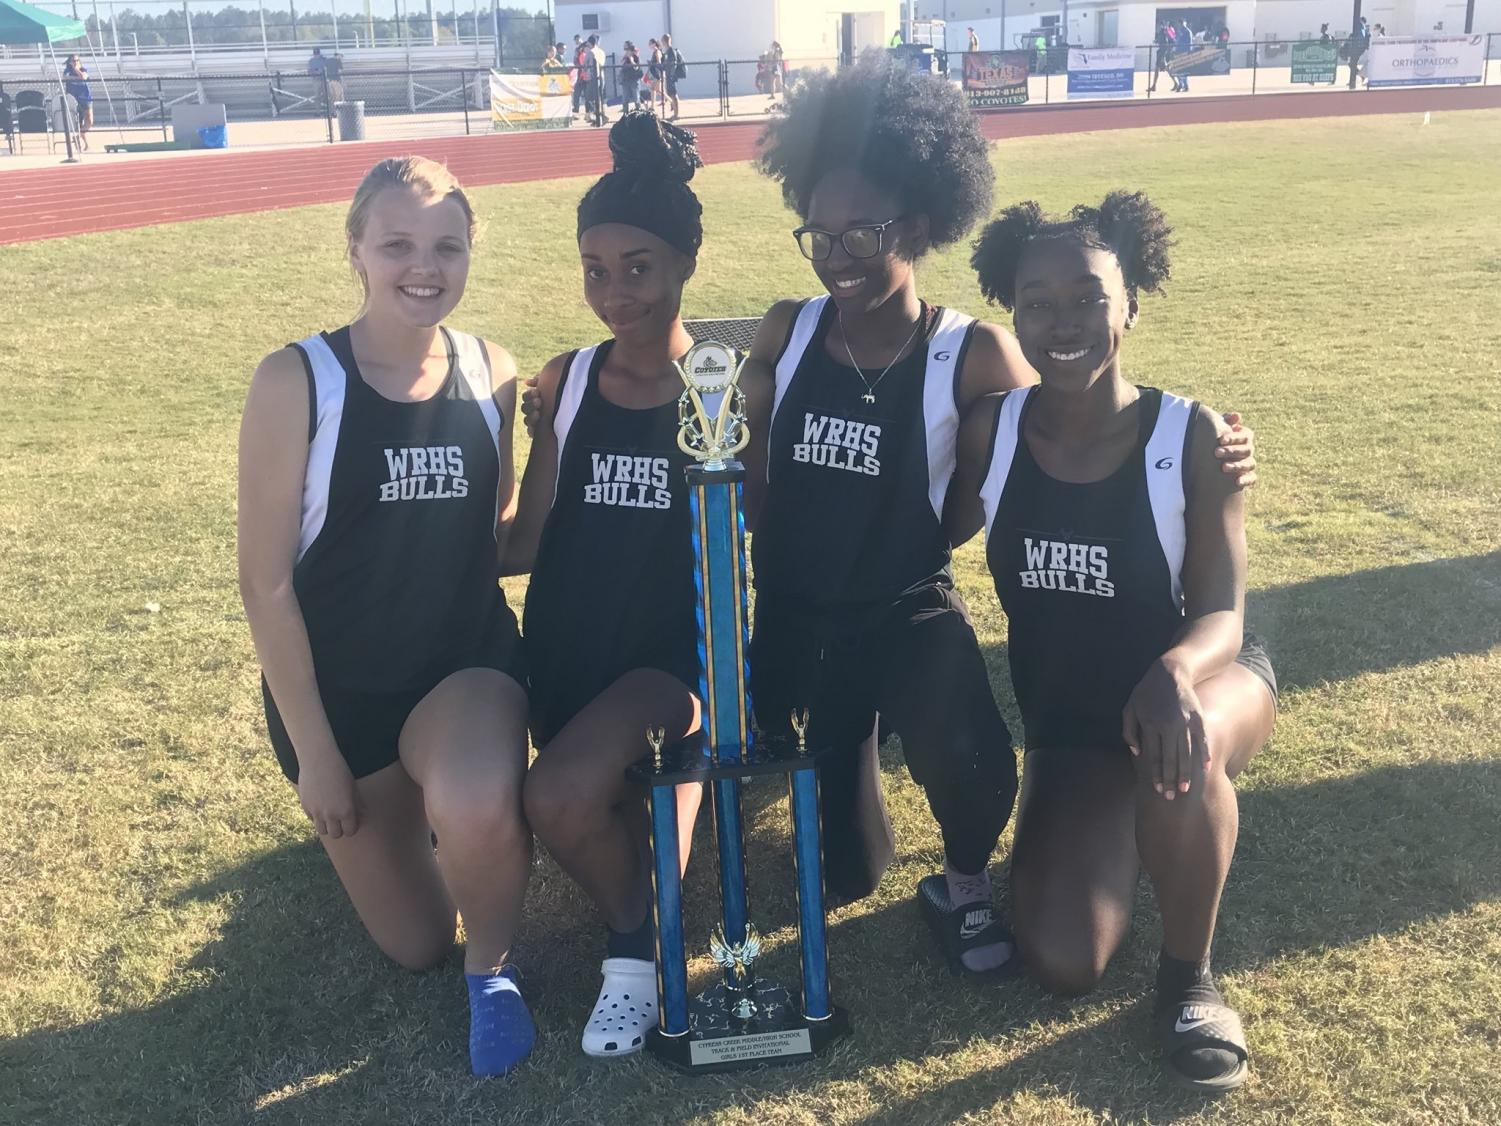 Bella, Sierra, Qyana, and Tai posing with the team's first place trophy.